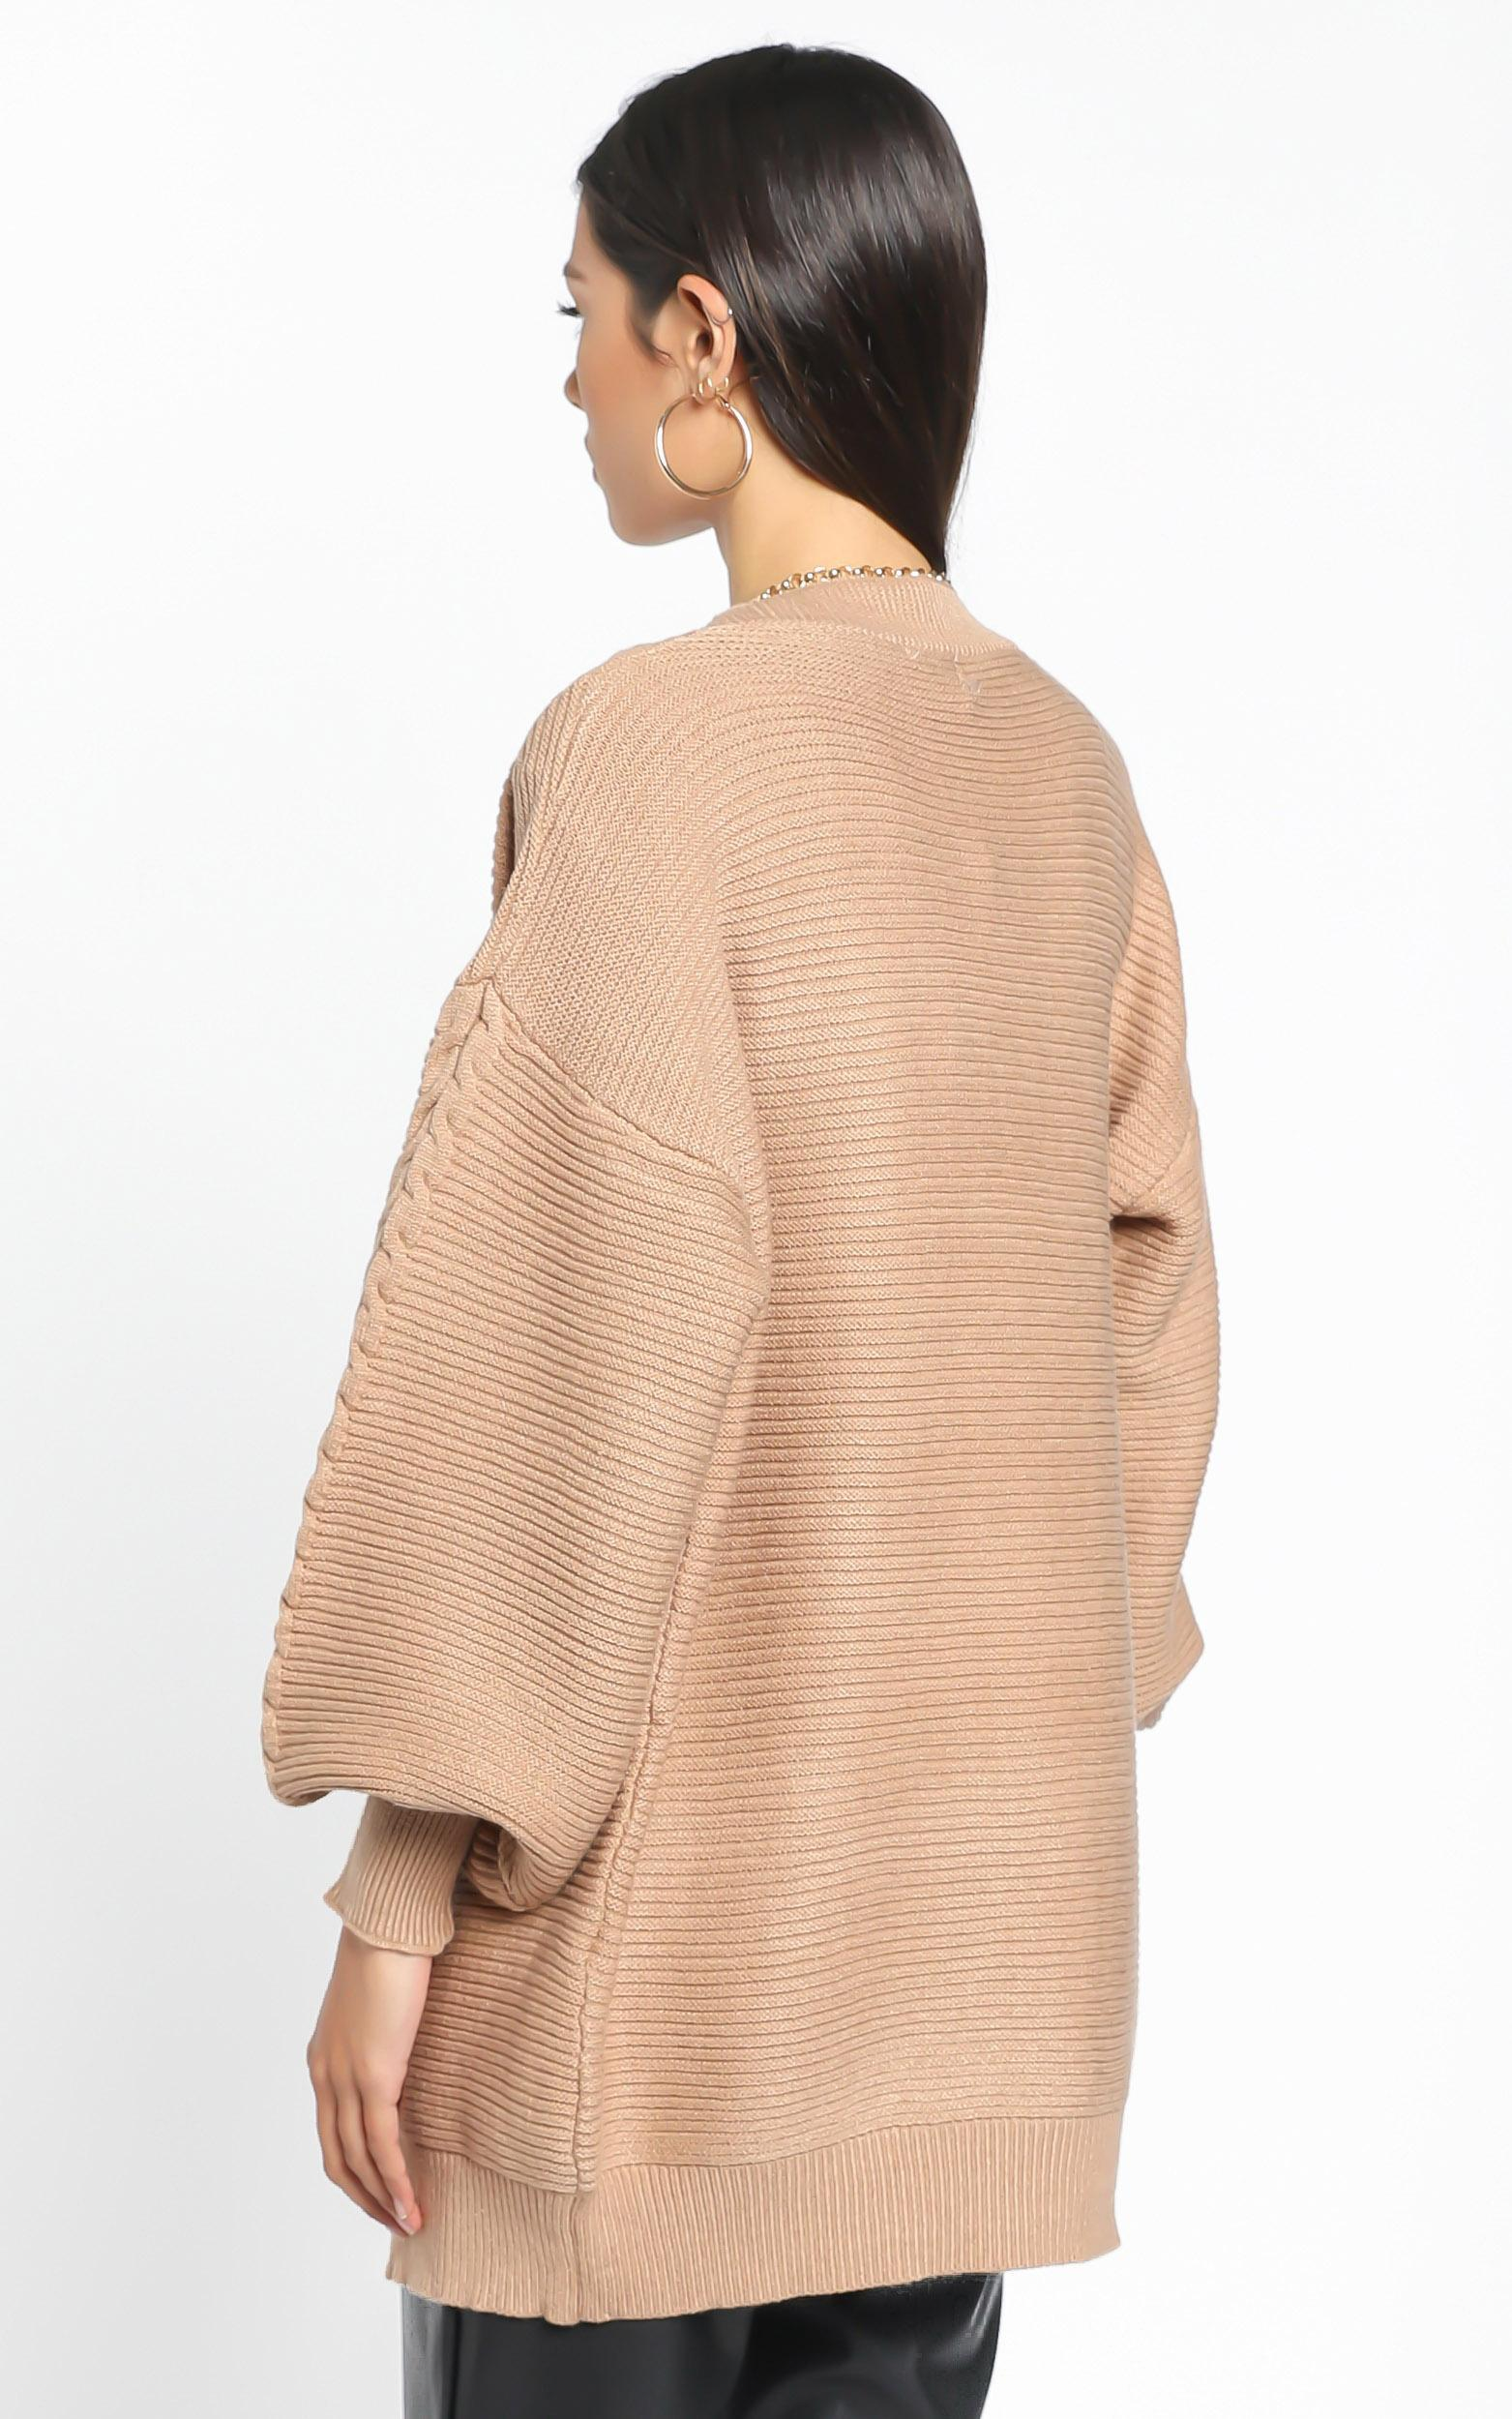 Hayes Knit in  Tan - M/L, Tan, hi-res image number null